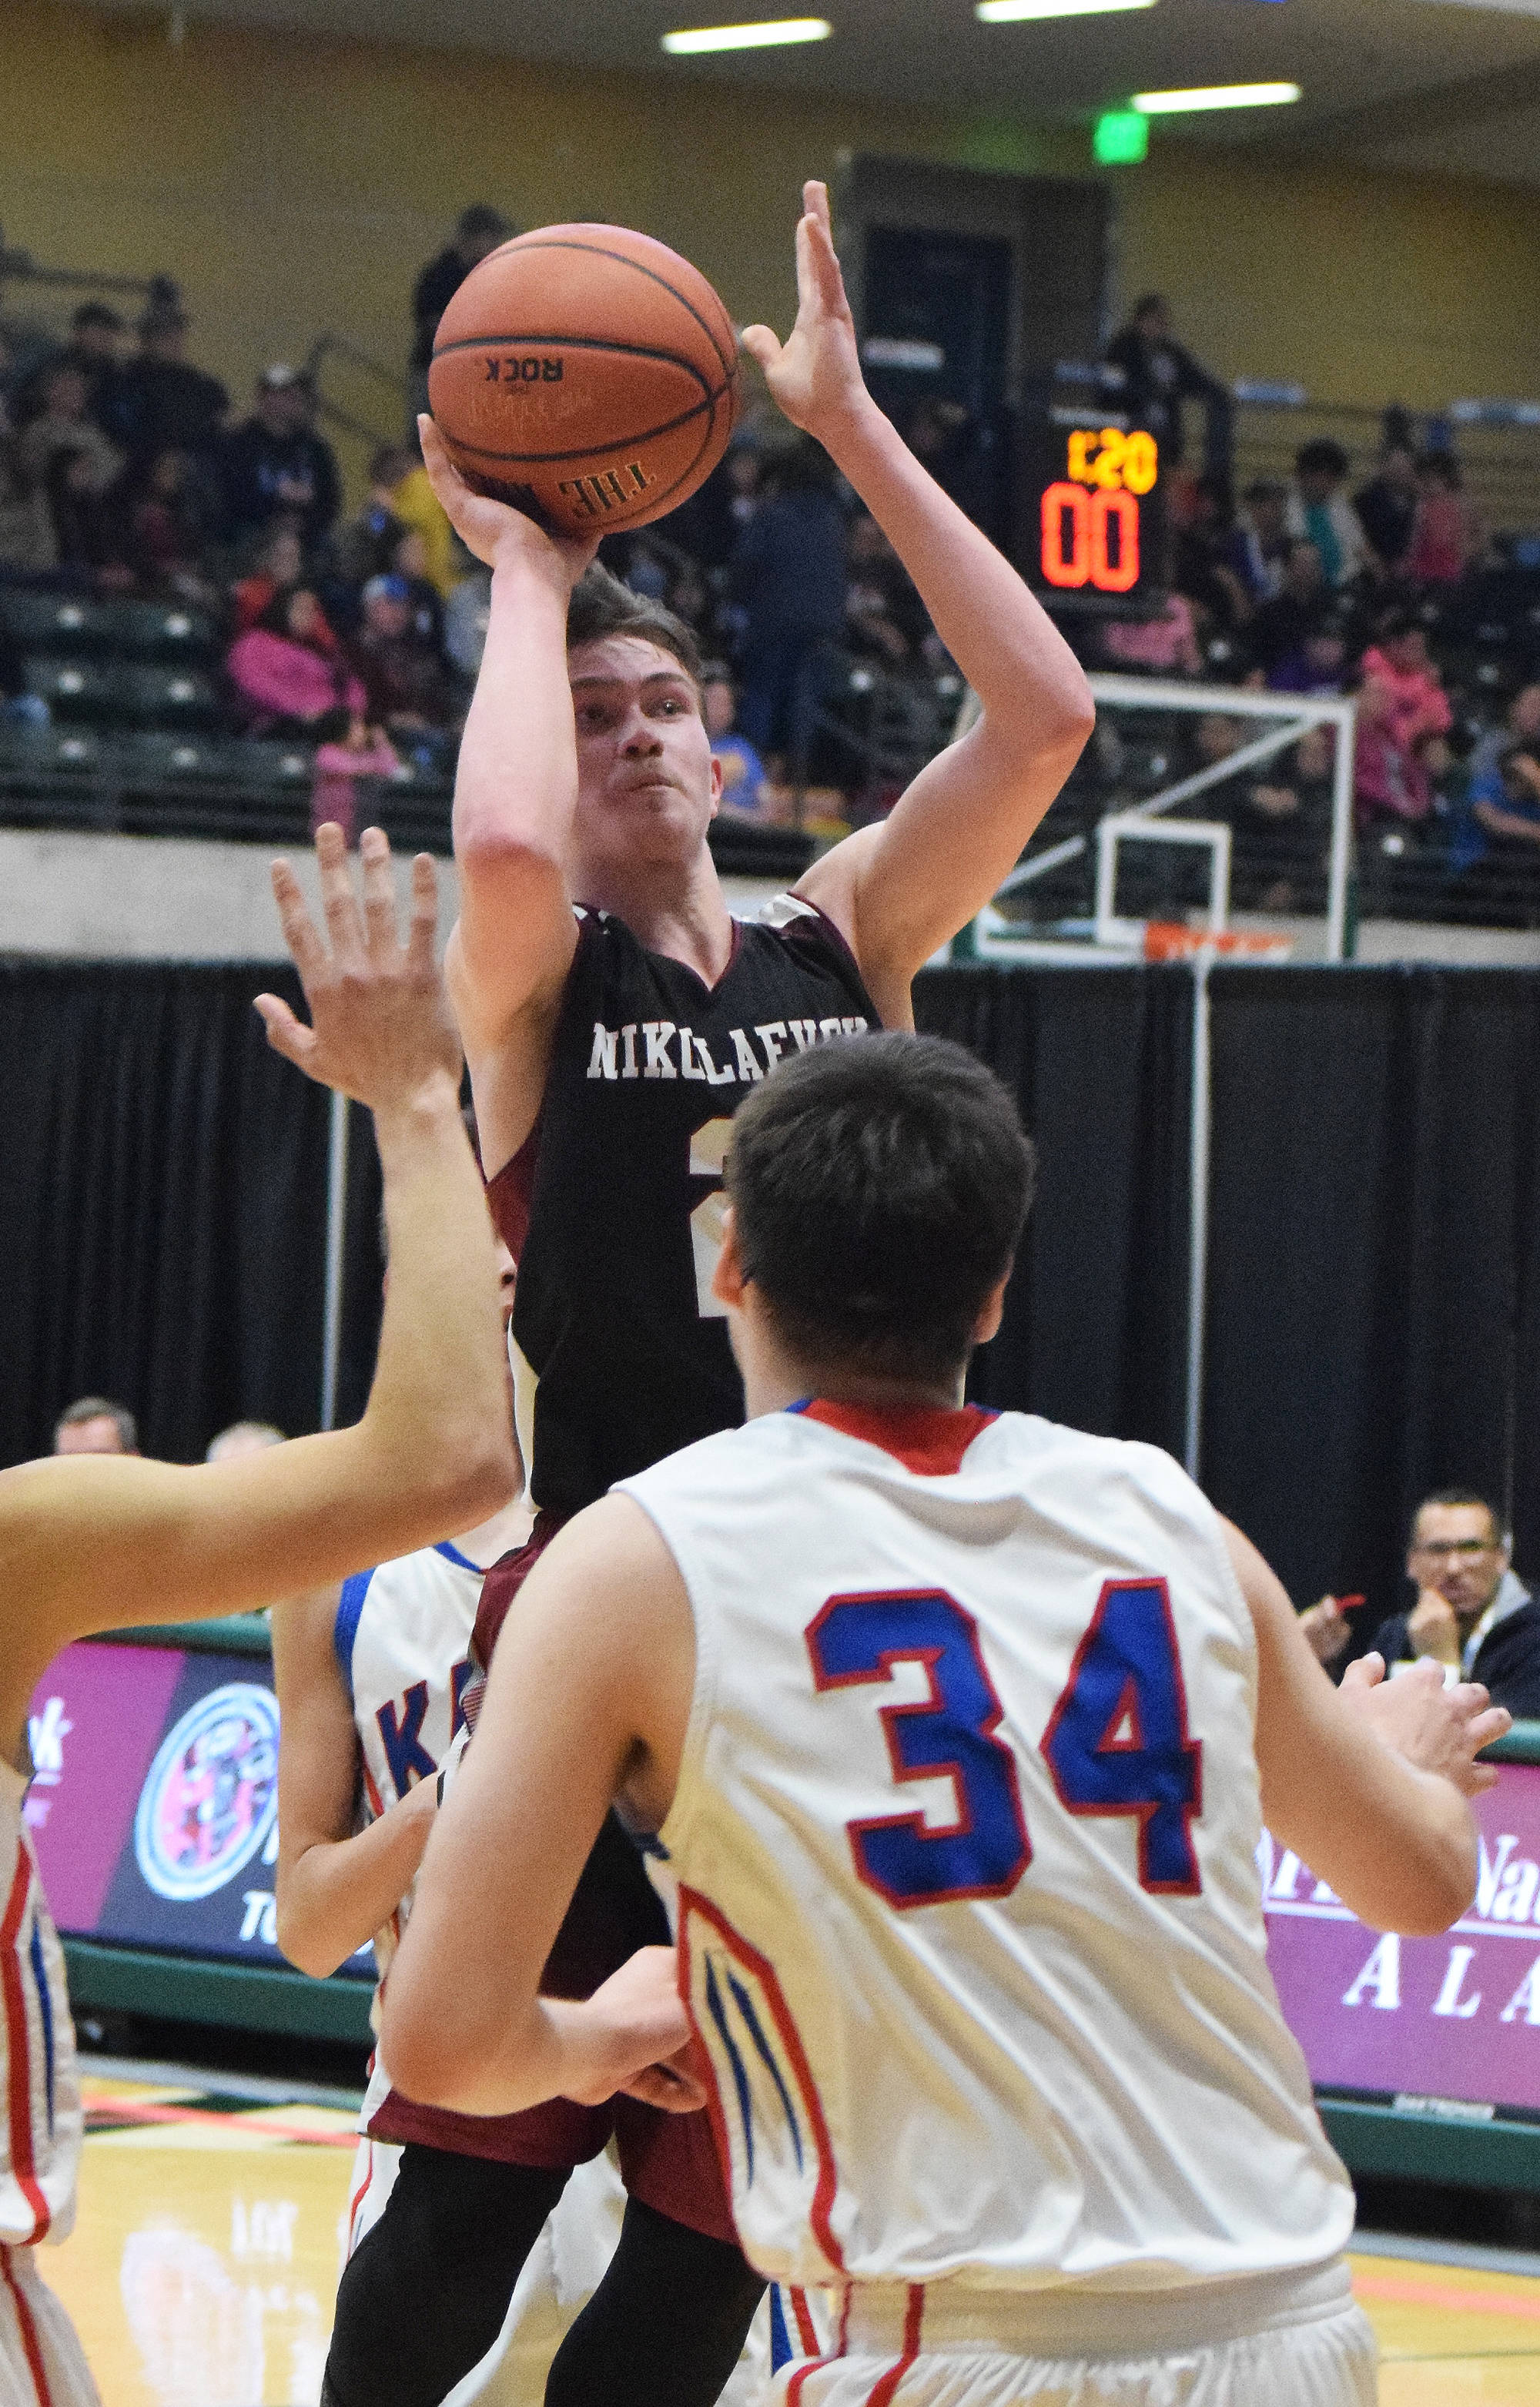 Nikolaevsk's Kalenik Molodih eyes the rim Wednesday against the Kake Thunderbirds at the Class 1A boys state tournament at the Alaska Airlines Center in Anchorage. (Photo by Joey Klecka/Peninsula Clarion)